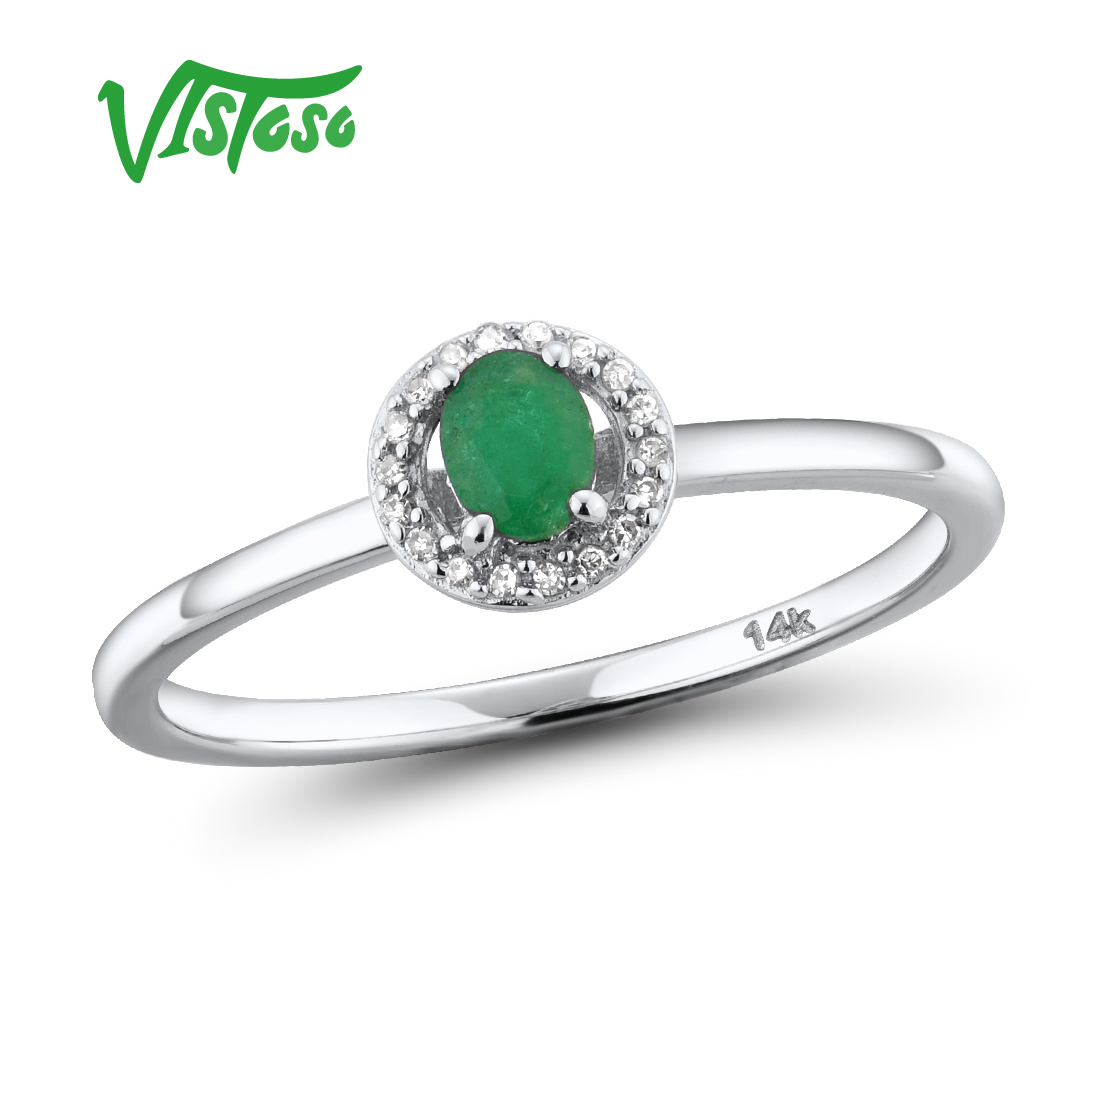 VISTOSO 14K White Gold Rings For Lady Genuine Shiny Diamond Fancy Sapphire Ruby Emerald Engagement Anniversary Chic Fine Jewelry